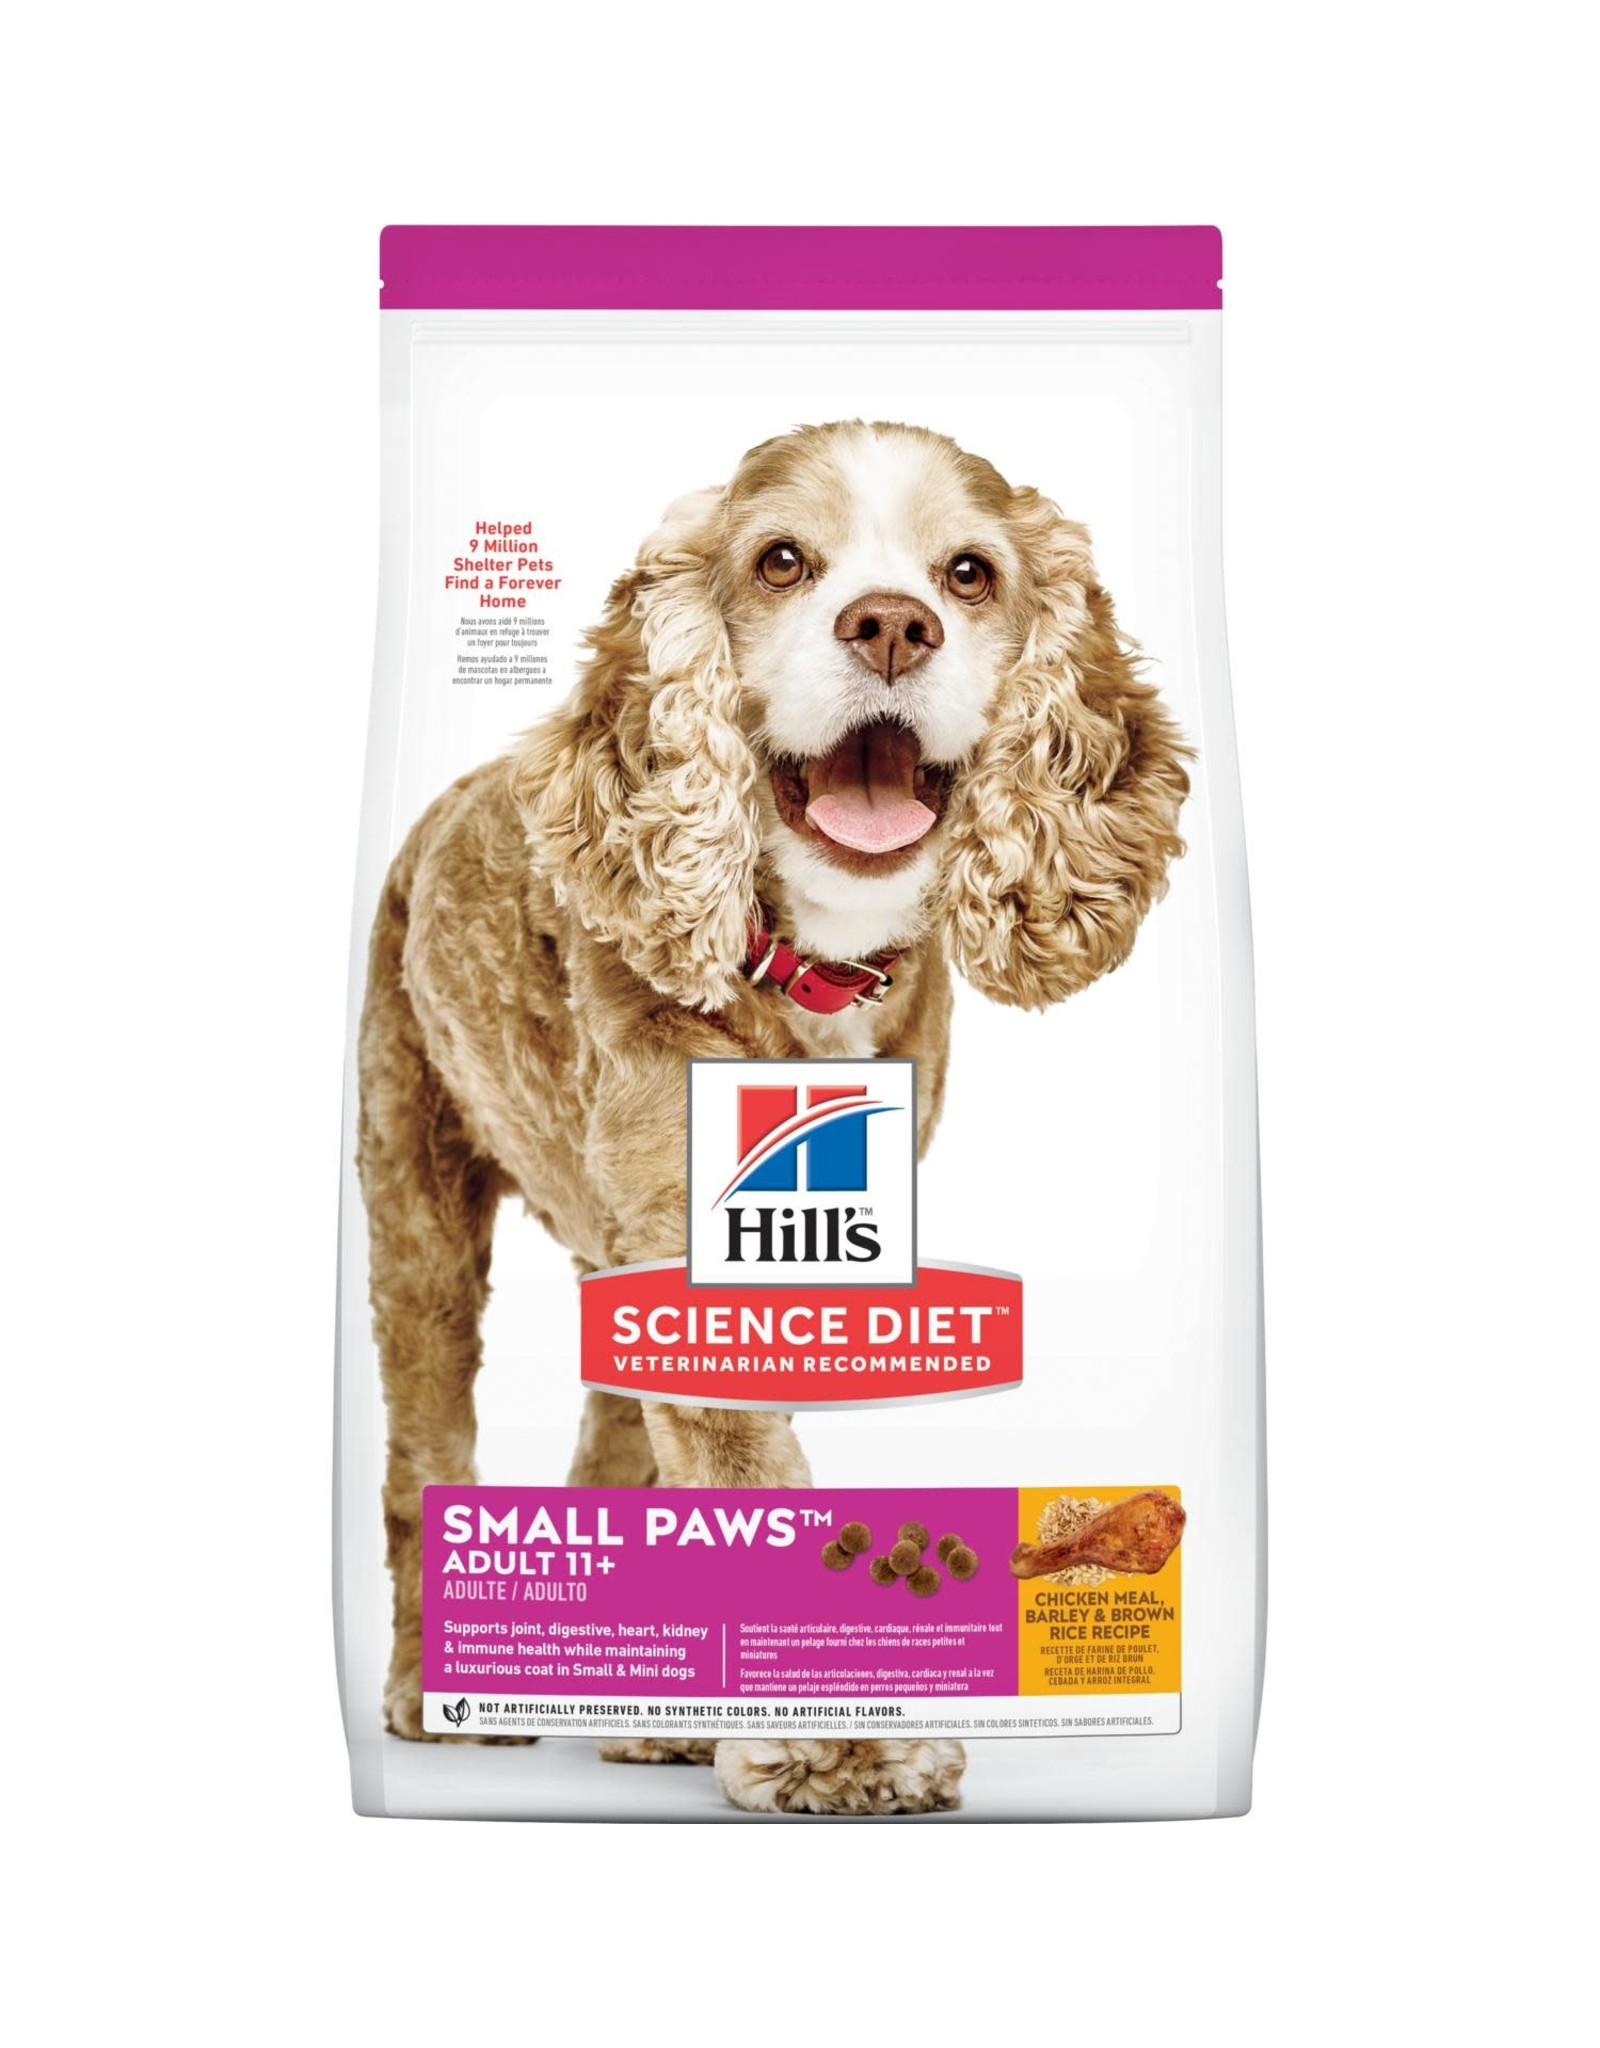 Science Diet Science Diet Dog - Small Paws Adult 11+ 4.5lb